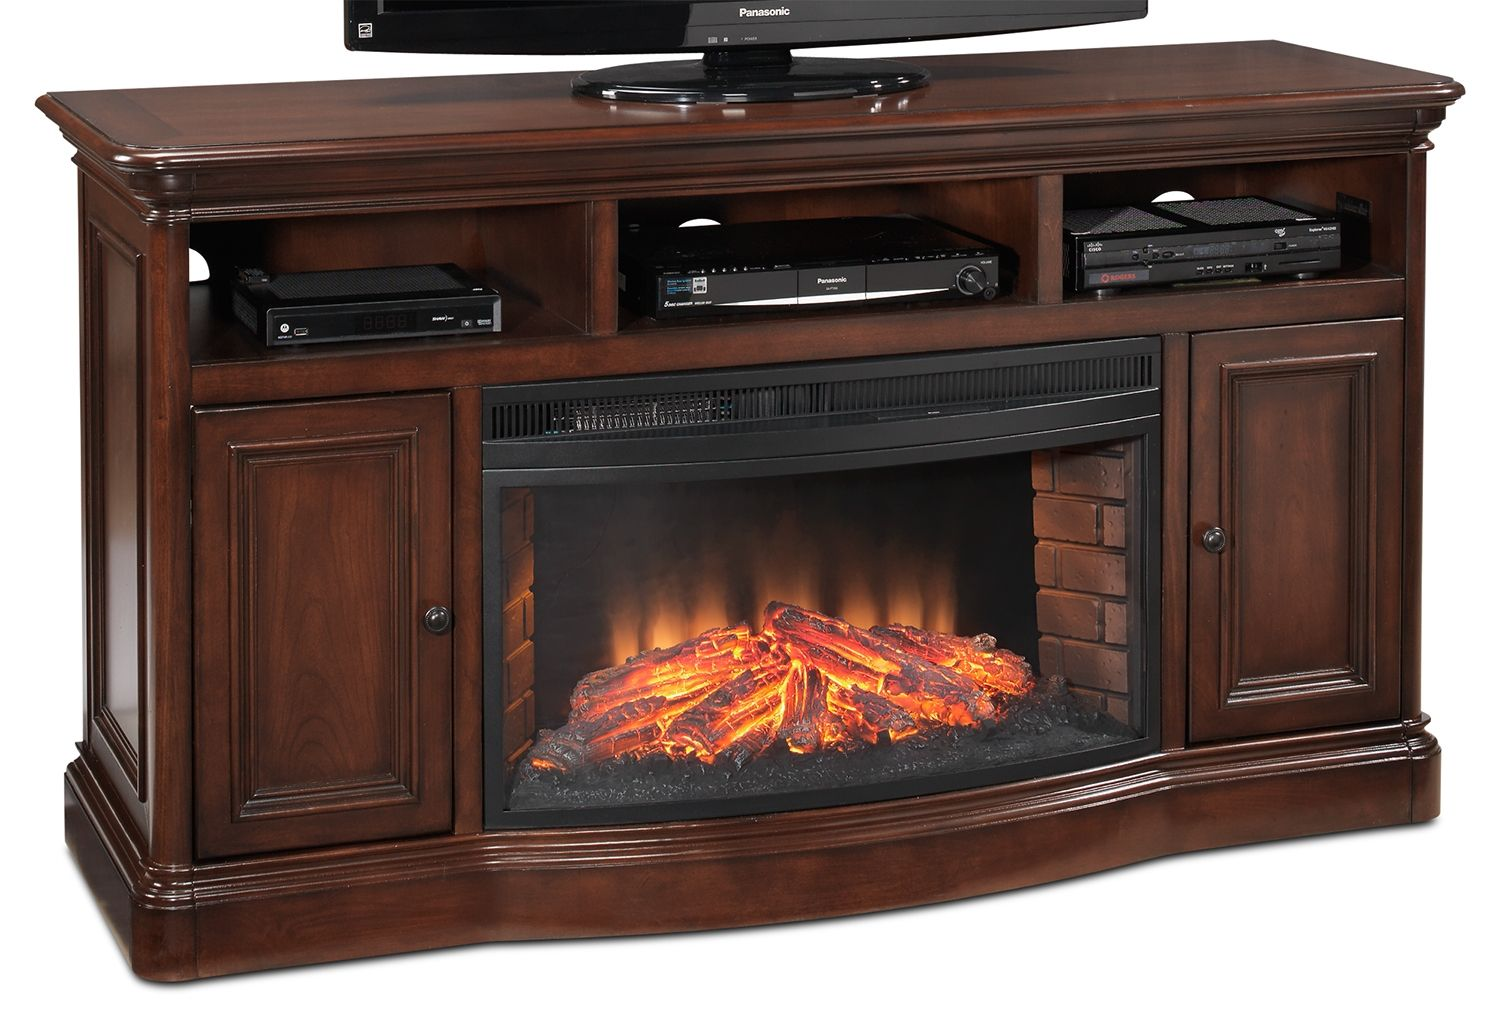 Toscana Entertainment Wall Units Fireplace Credenza Leon S Fireplace Credenza Entertainment Wall Units Electric Fireplace Wall